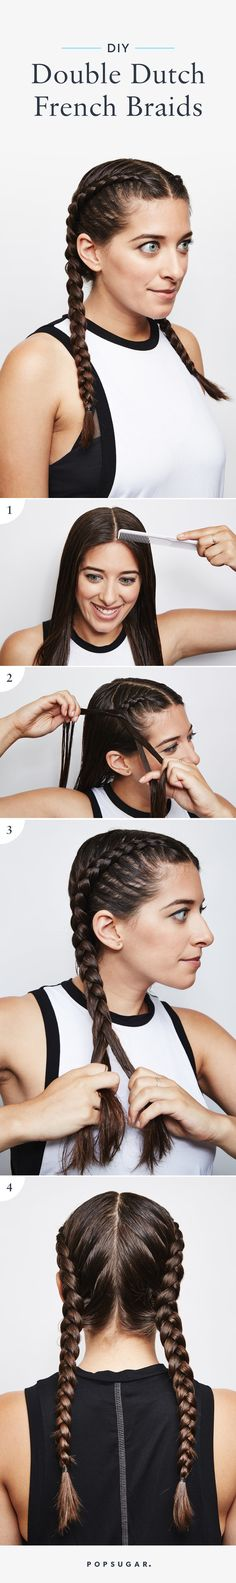 Pin It! | Feel Balanced at Yoga With These Double Dutch French Braids | POPSUGAR Beauty